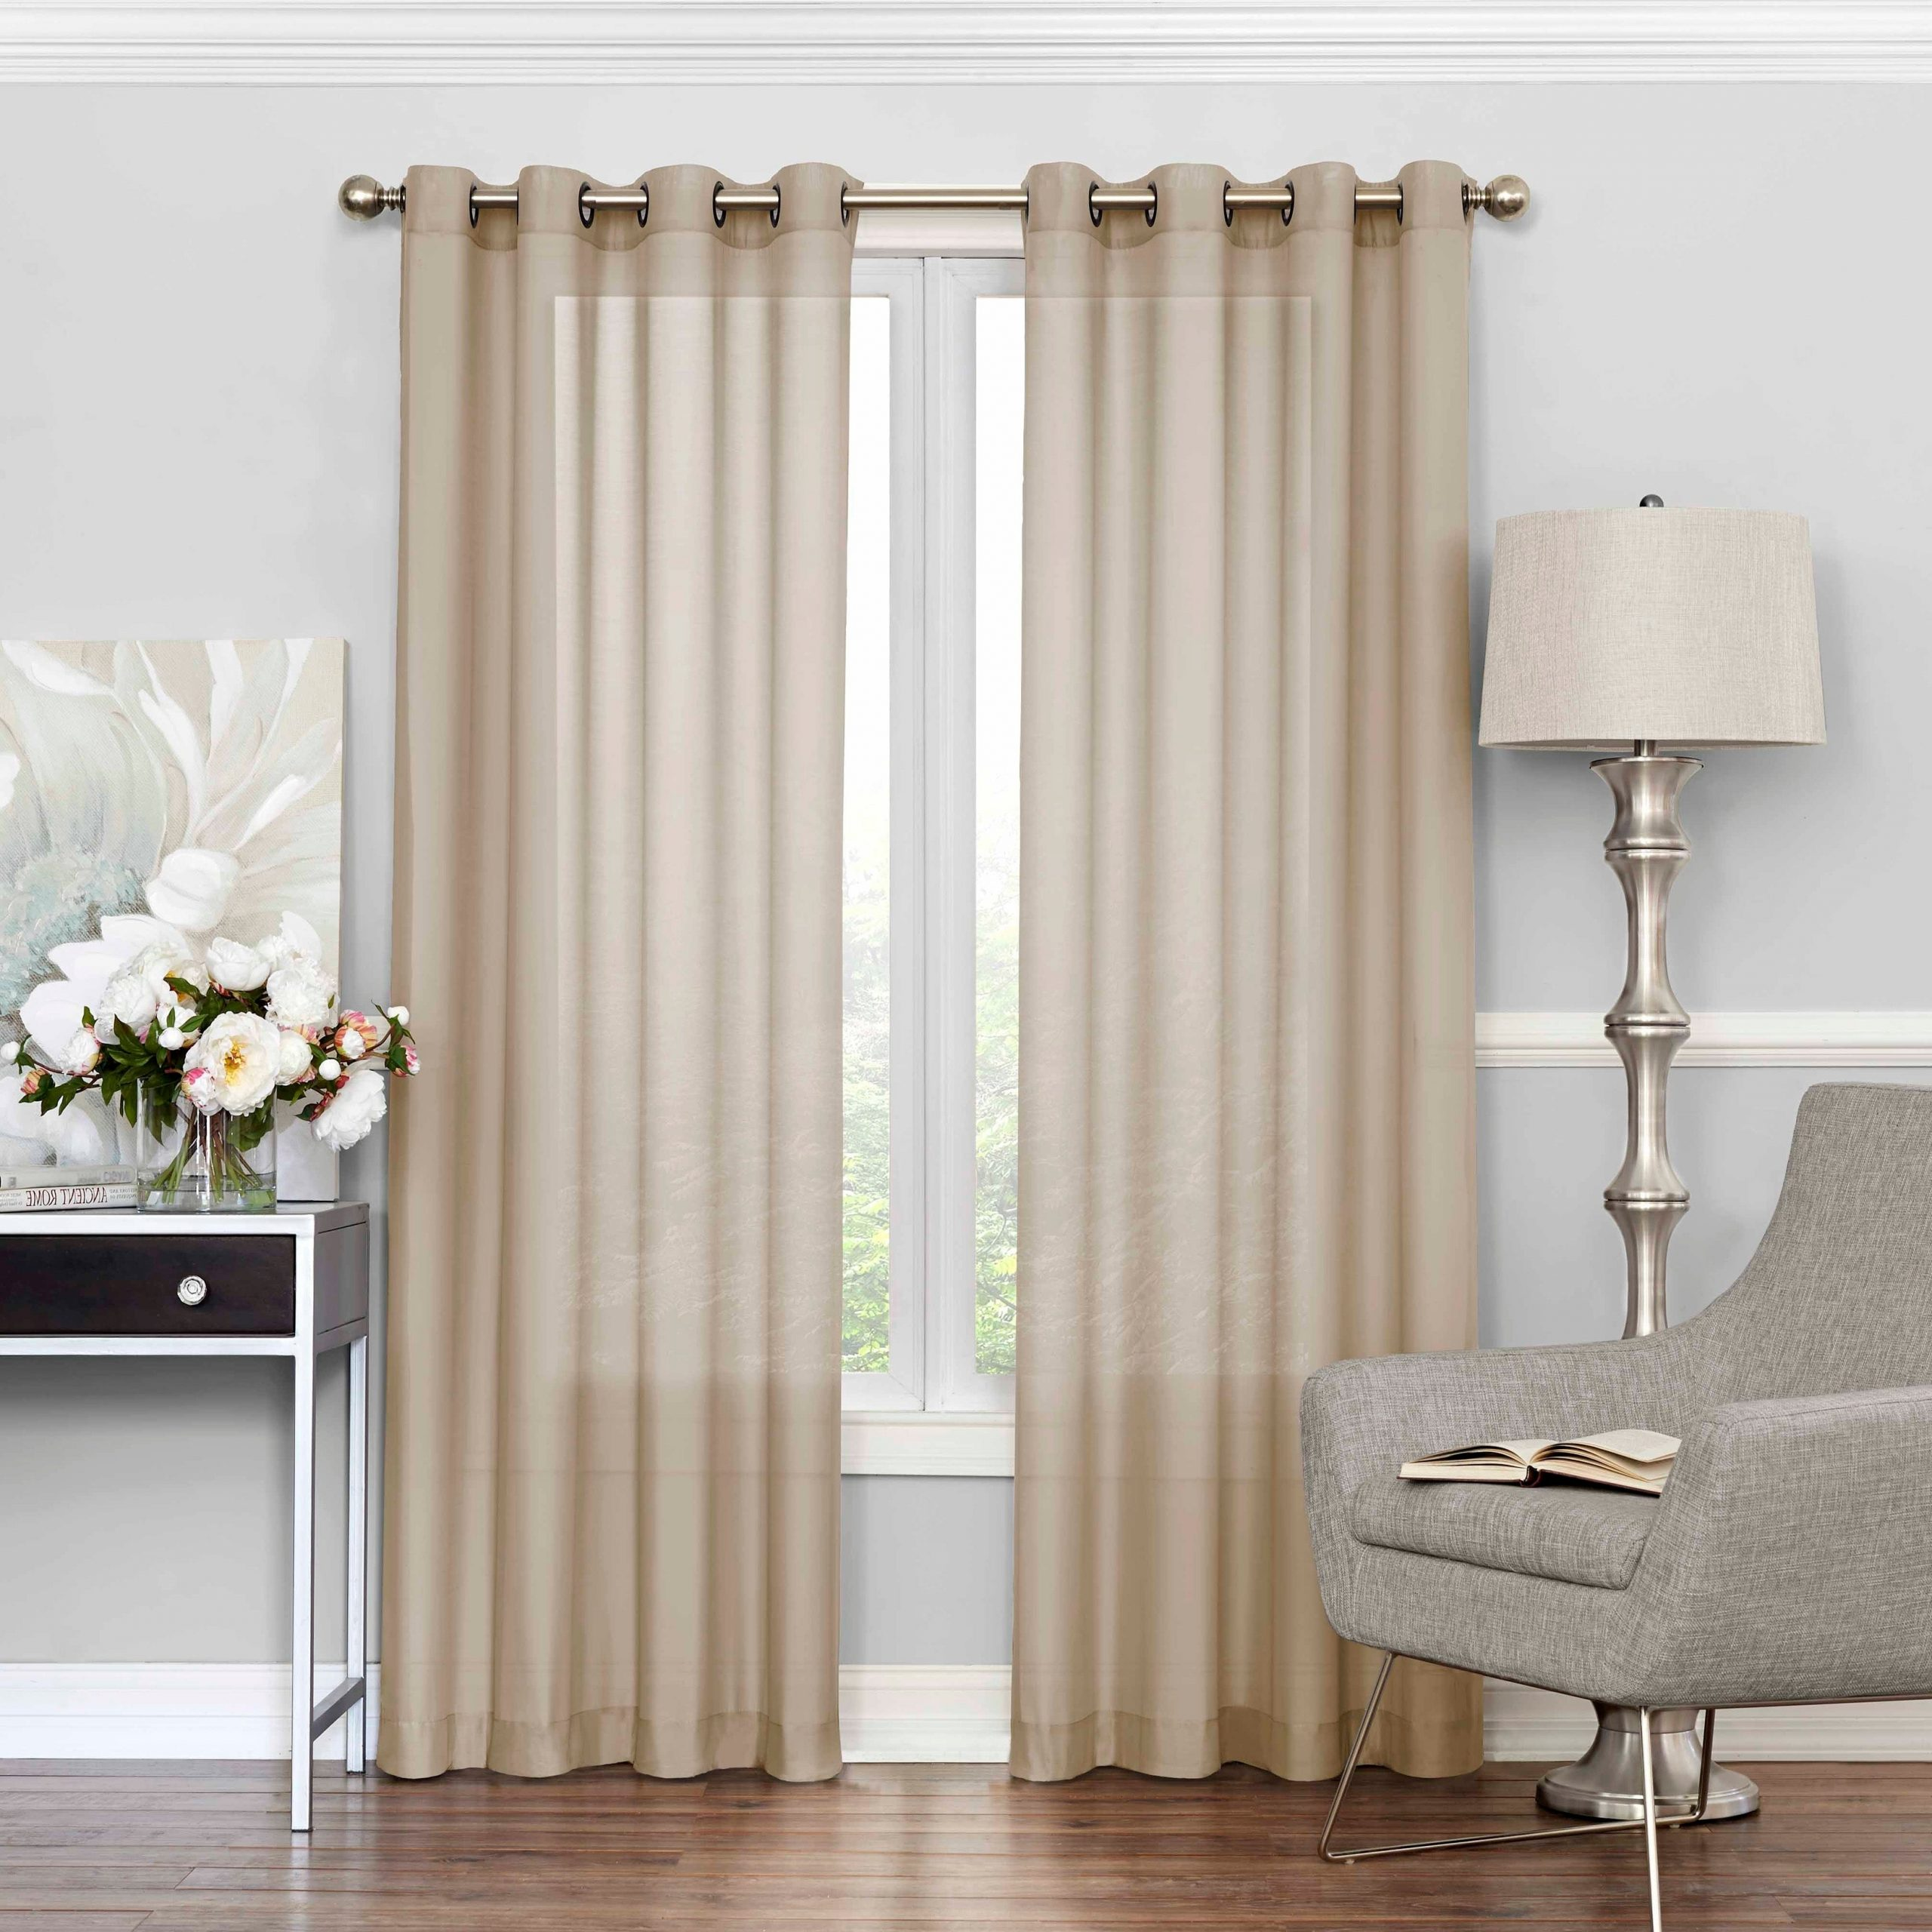 Most Current Eclipse Liberty Light Filtering Sheer Single Curtain Panel Throughout Light Filtering Sheer Single Curtain Panels (Gallery 1 of 20)